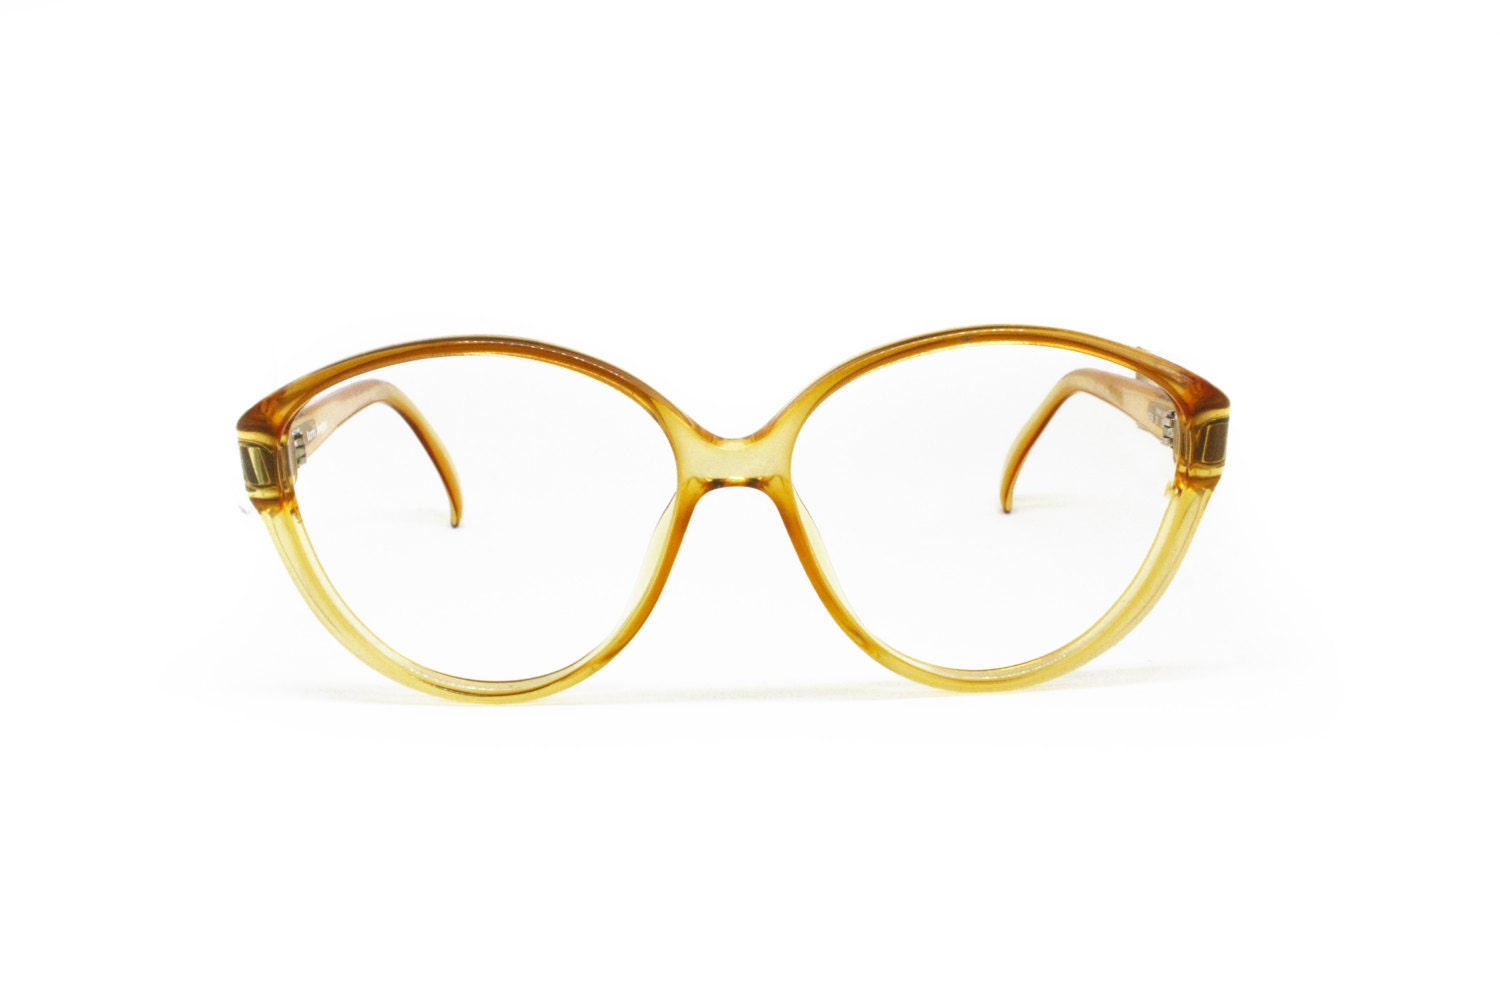 91606fbd890 Vintage 80s Terry Brogan medium oversize acetate frame yellow tones  semitransparent    oval Optyl glasses